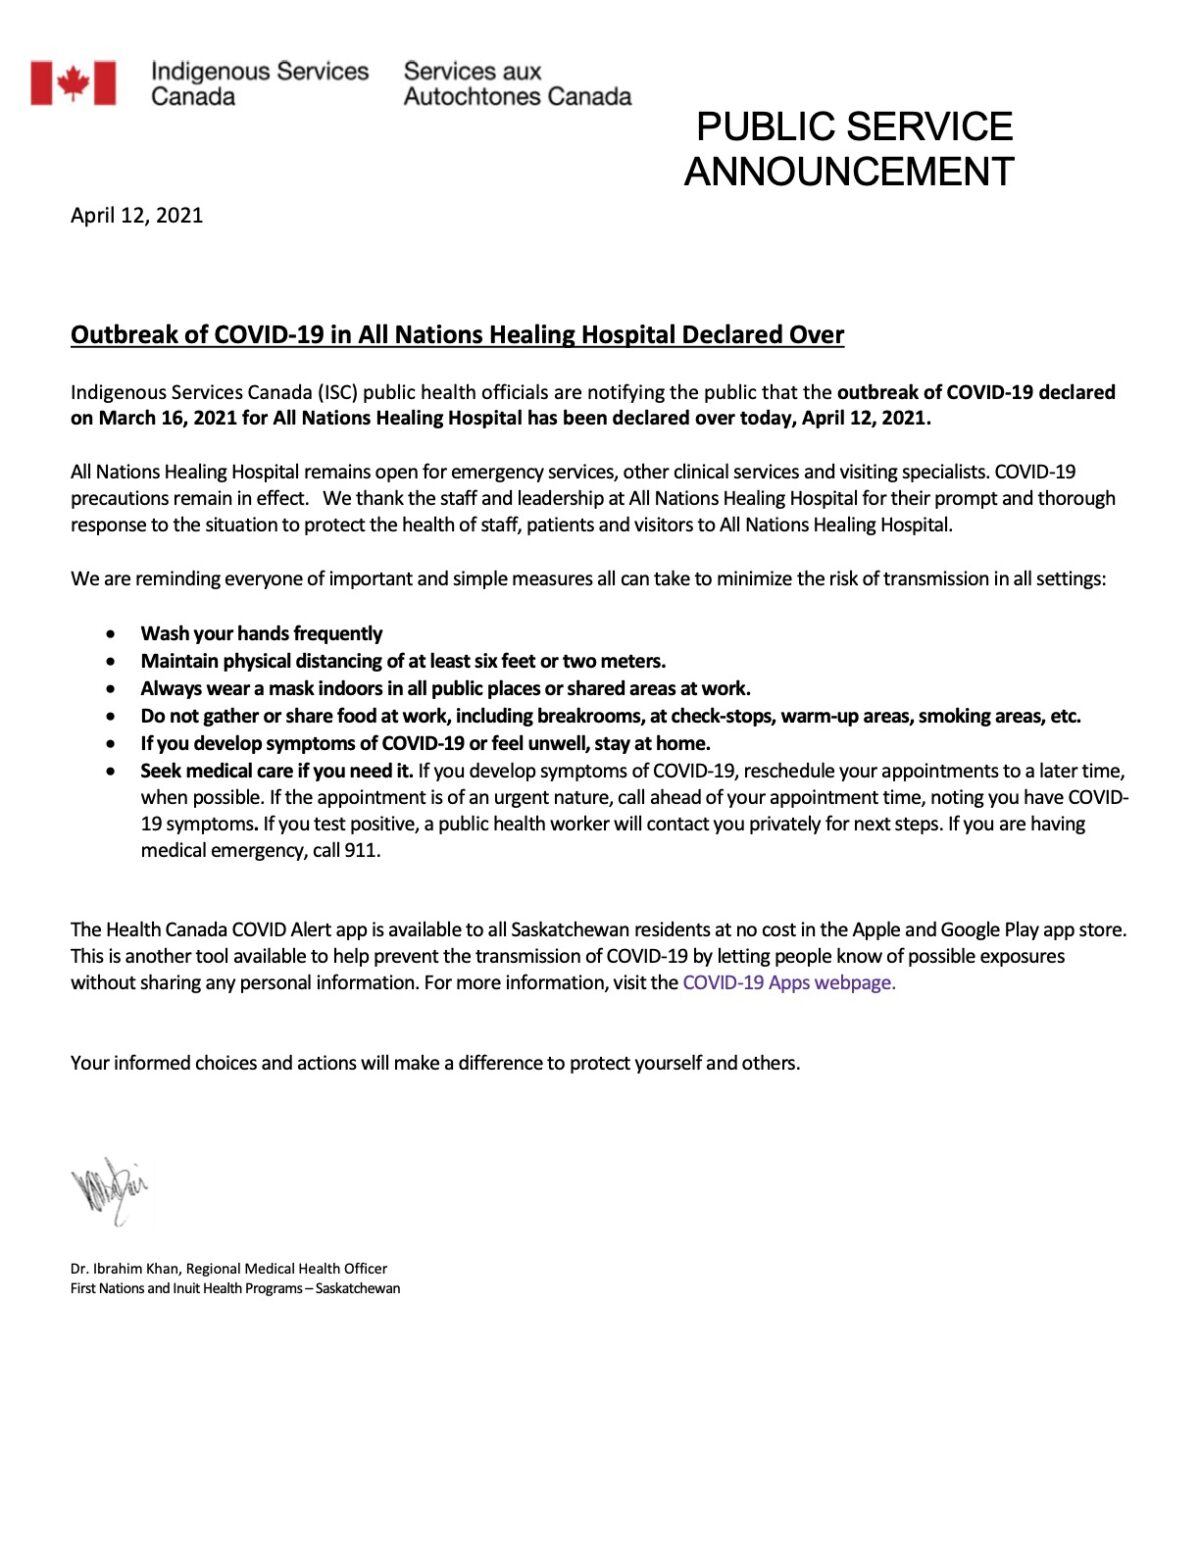 PSA-COVID-19-ISC-ANHH-Outbreak-Over-04-12-2021-1200x1553.jpg